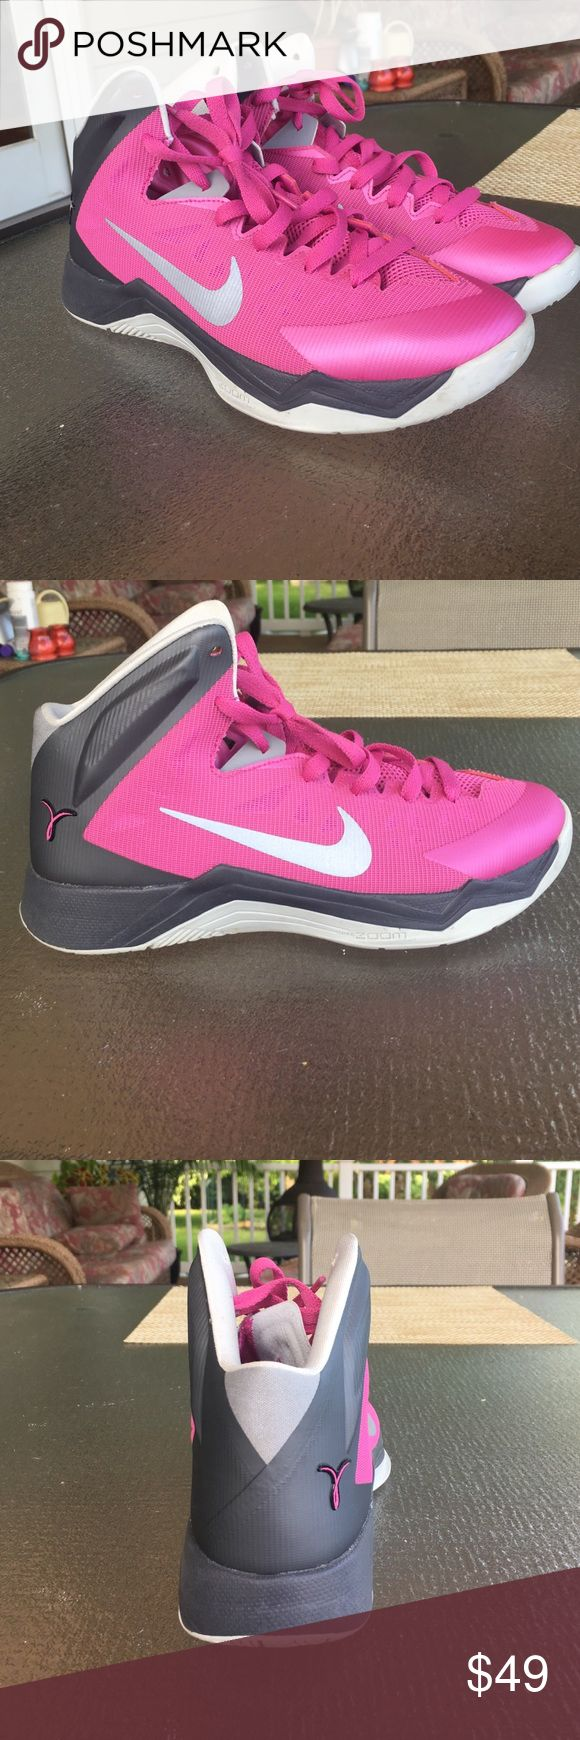 Nike Basketball Sneakers Women's Hot pink, grey and silver high top basketball sneakers, barely used! Nike Shoes Athletic Shoes